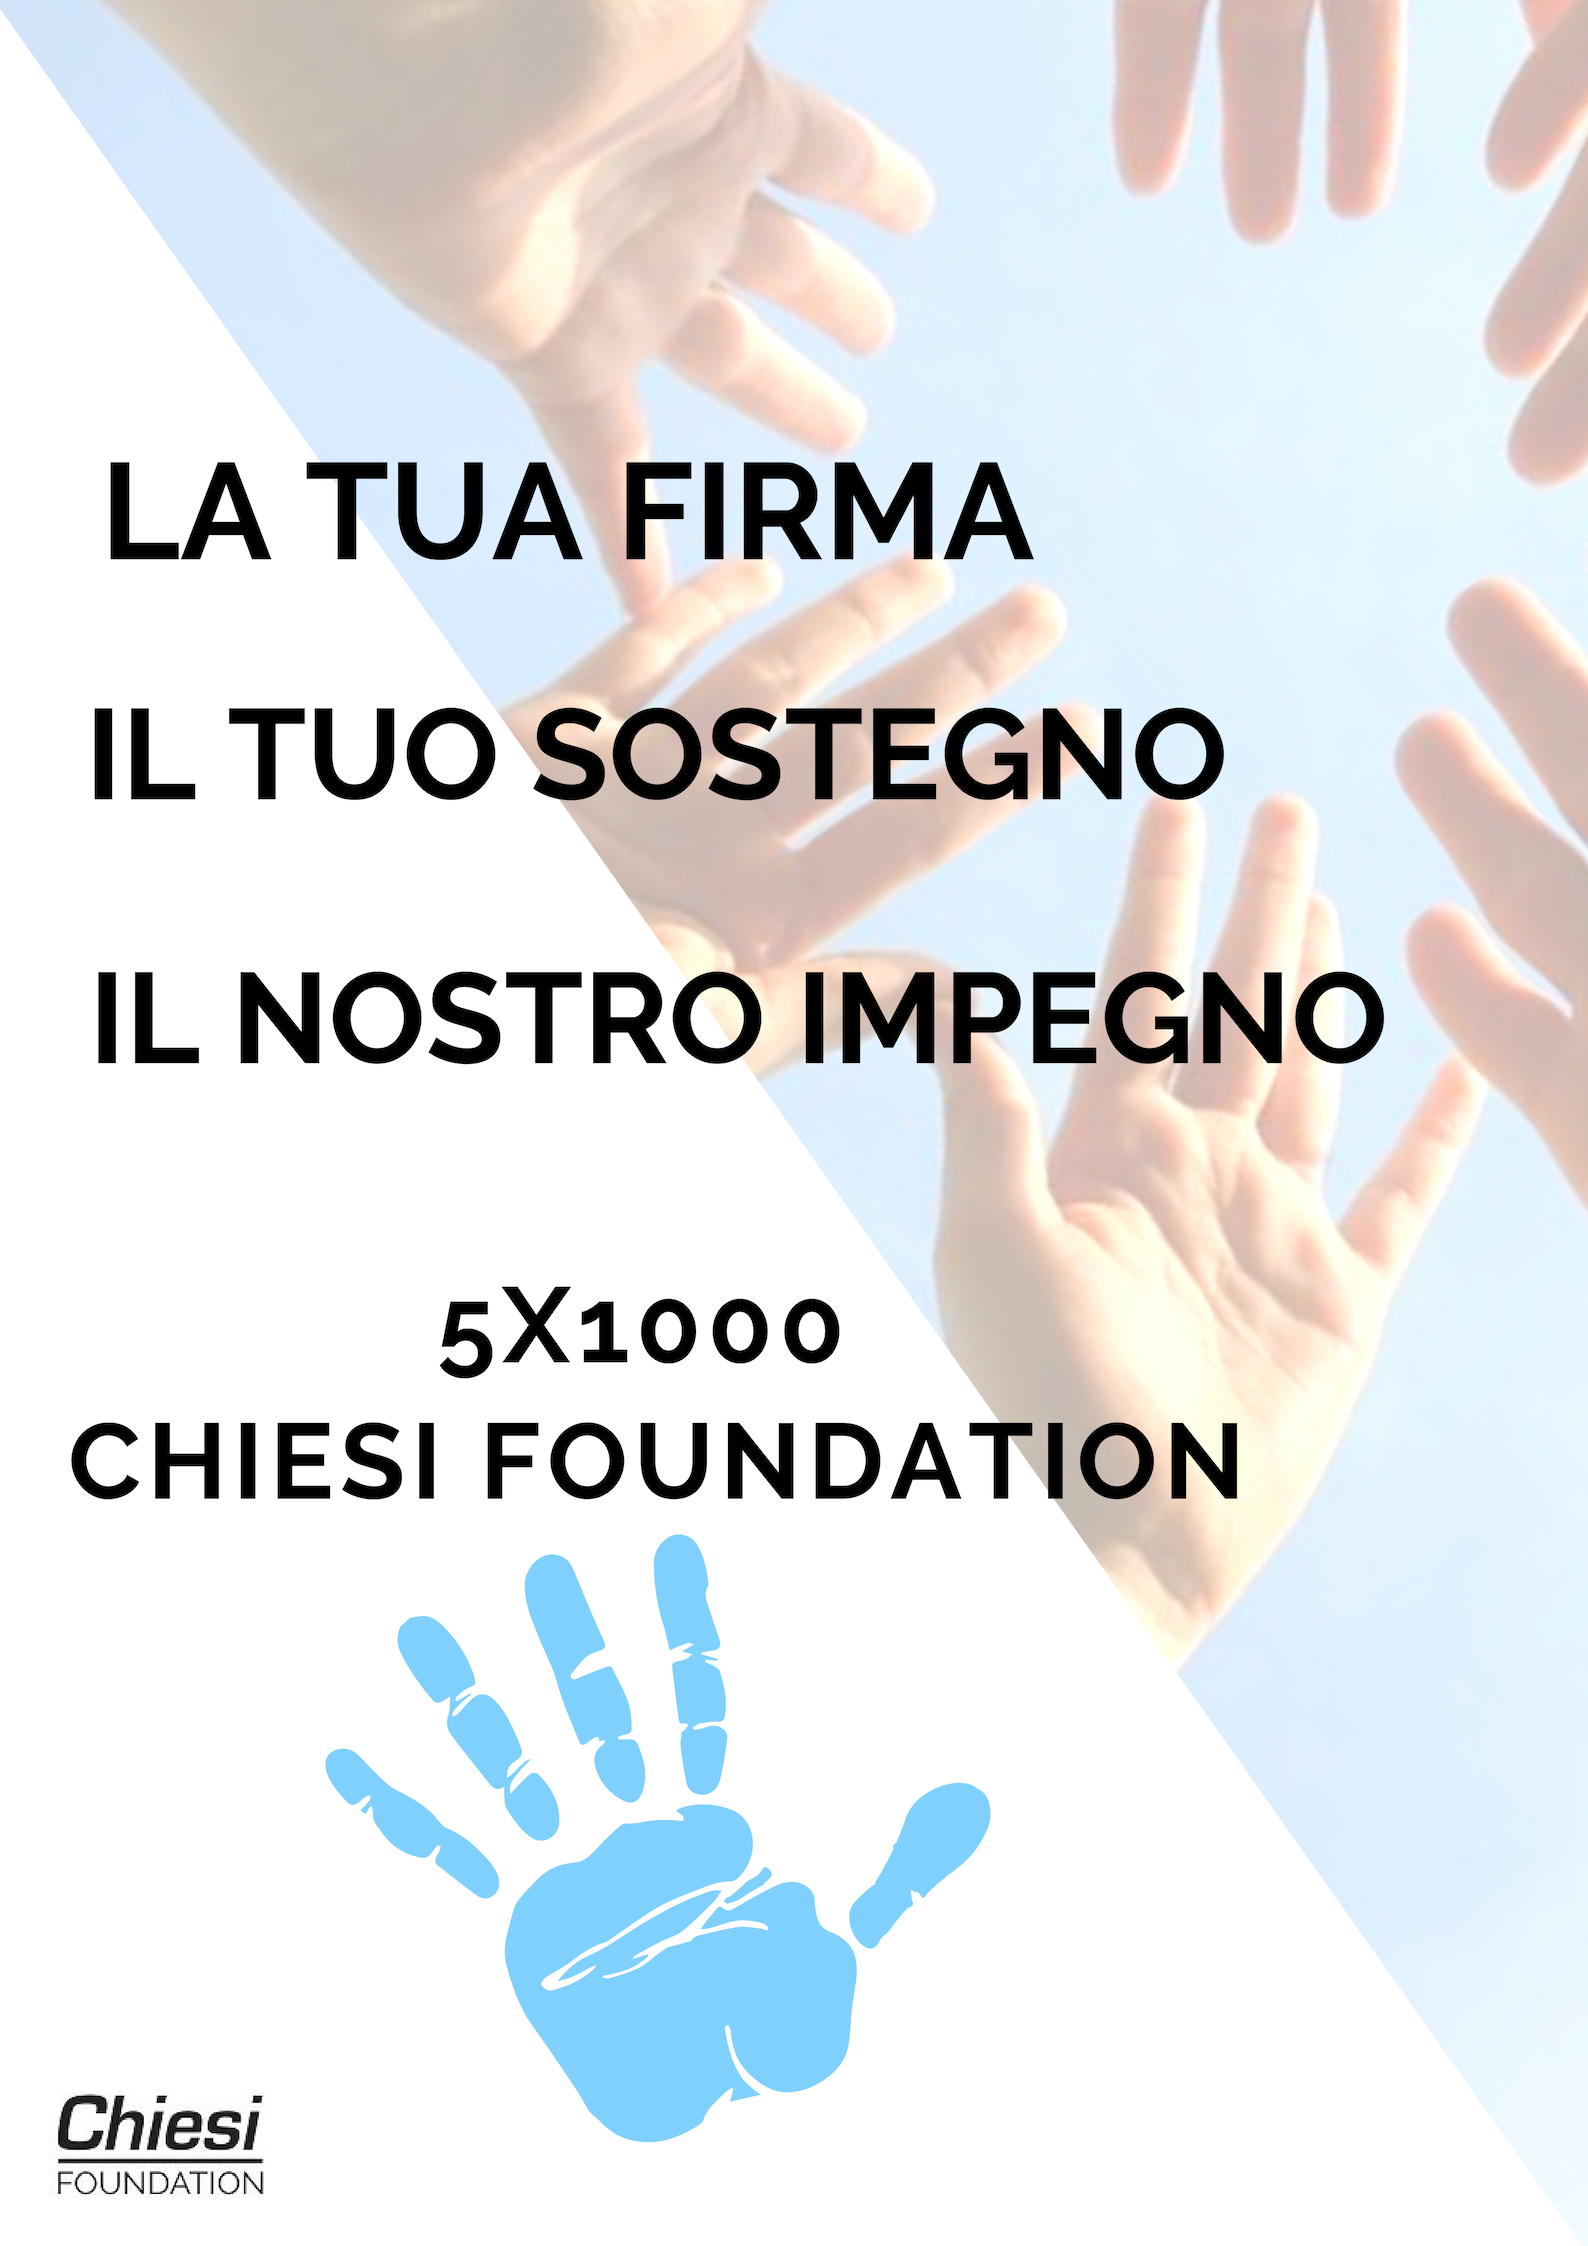 Il 5x1000 di Chiesi Foundation